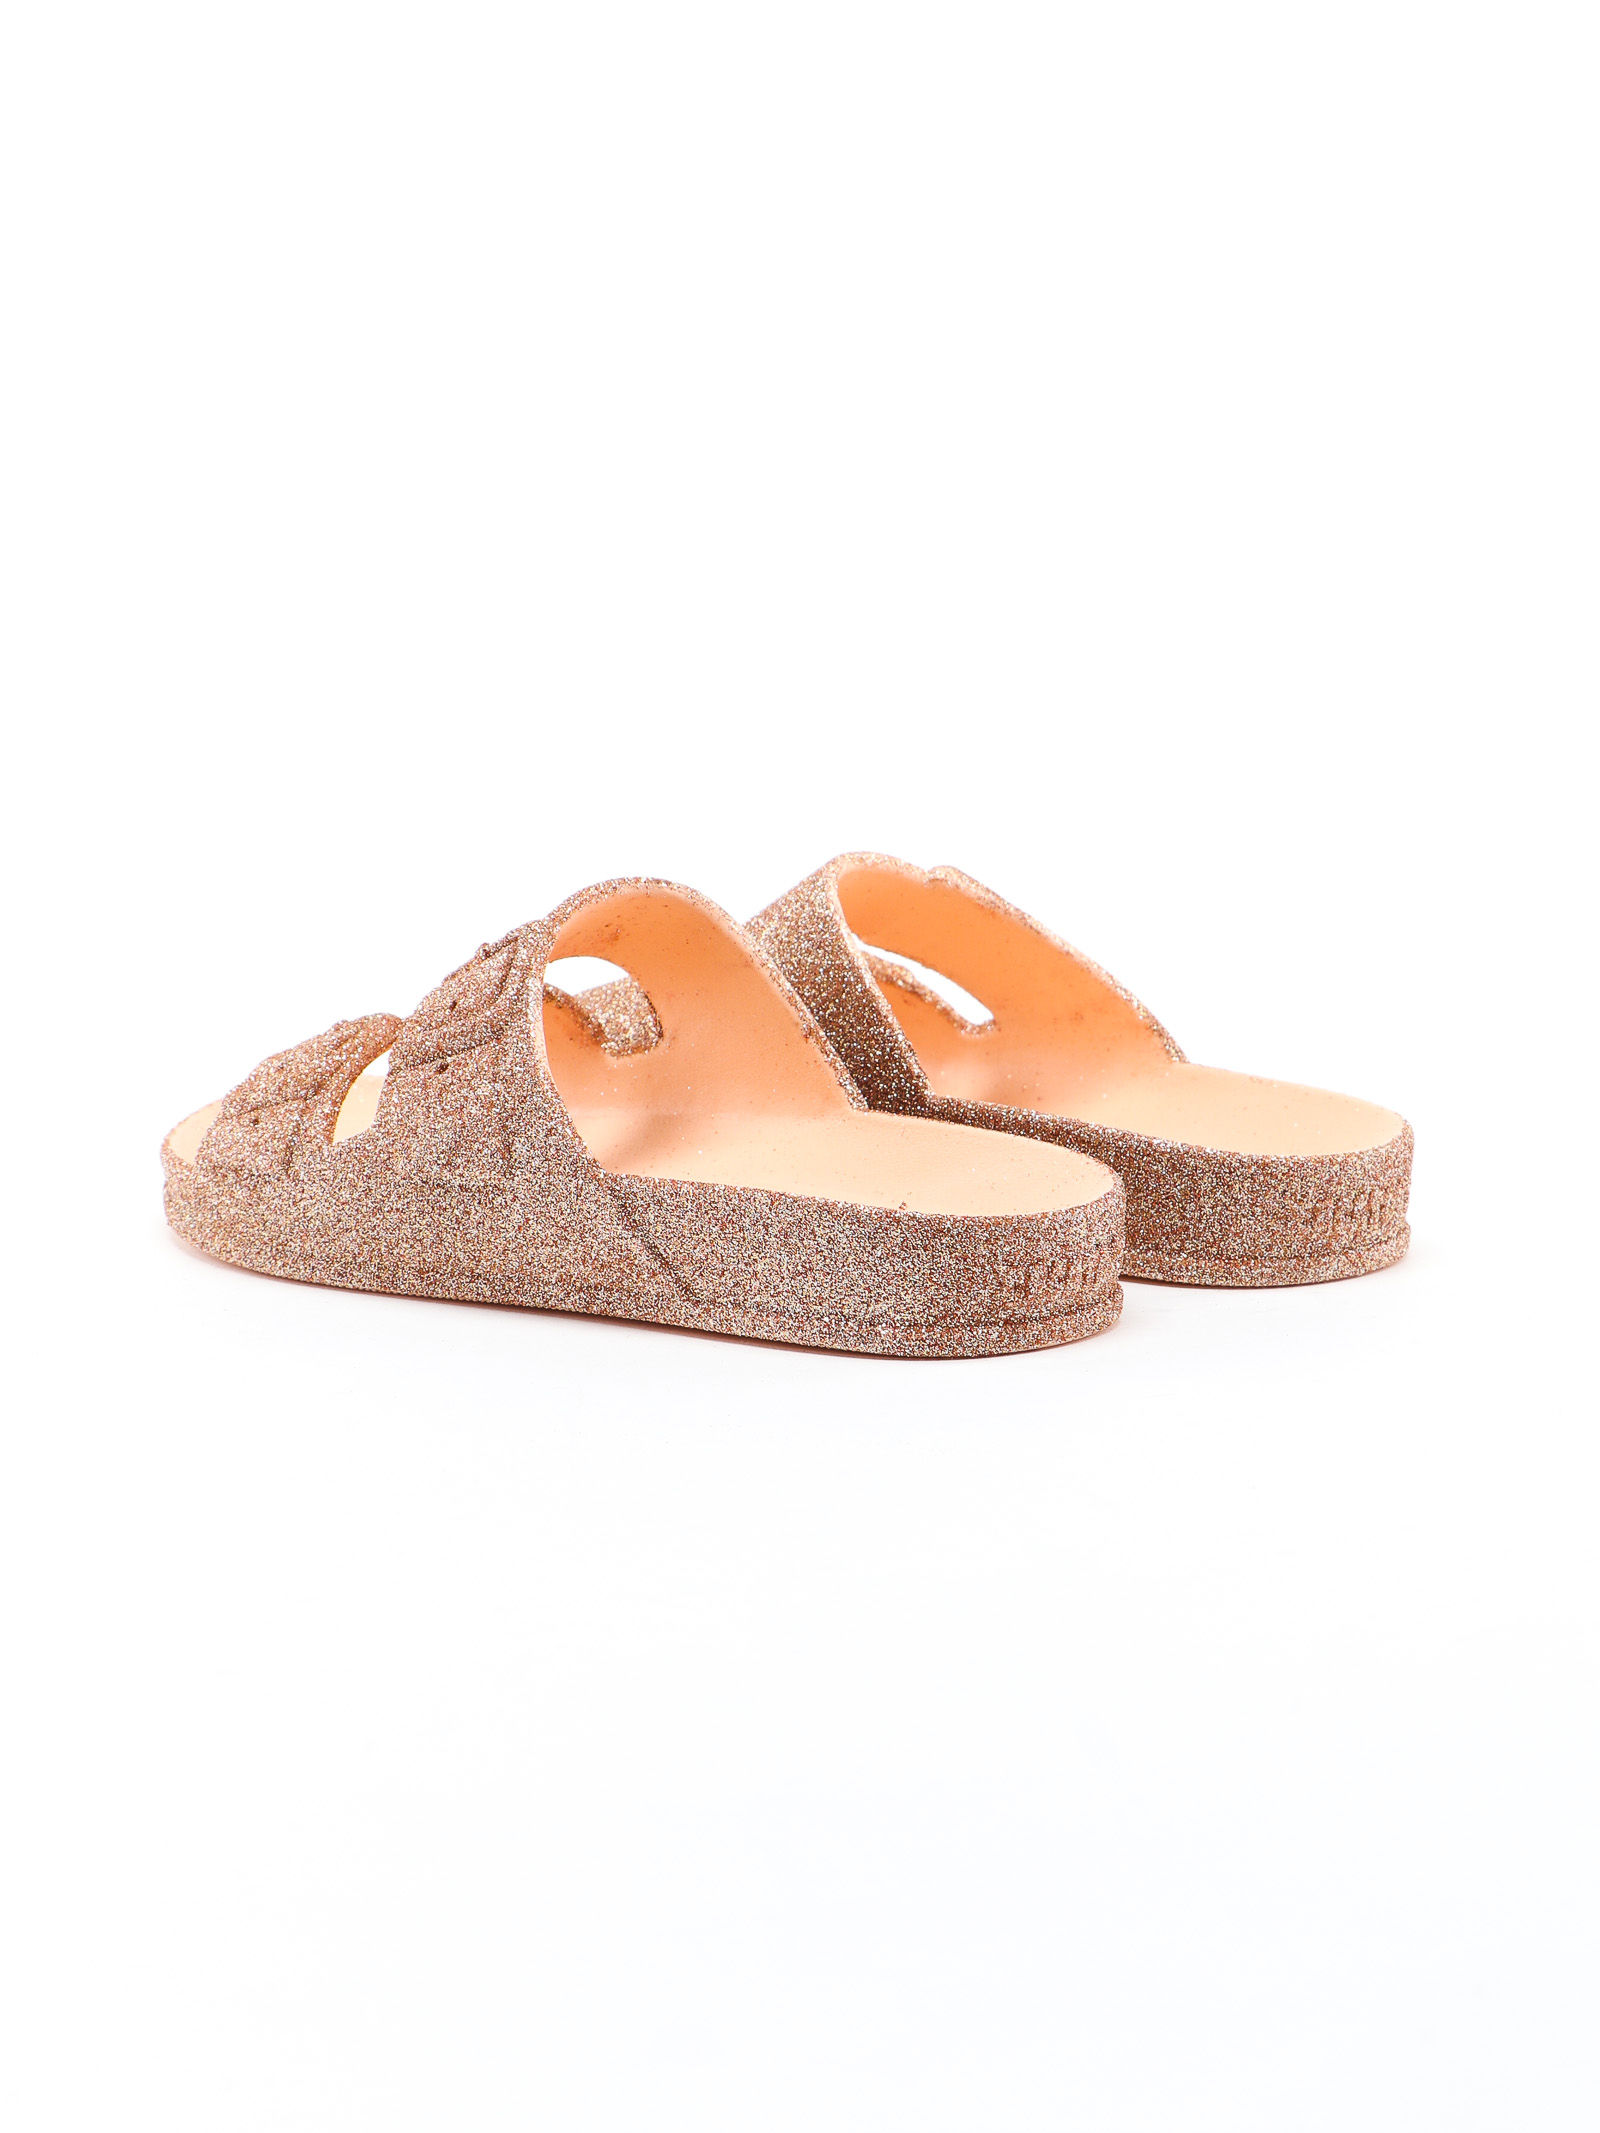 Picture of Cacatoes Do Brasil   Sandals Pvc